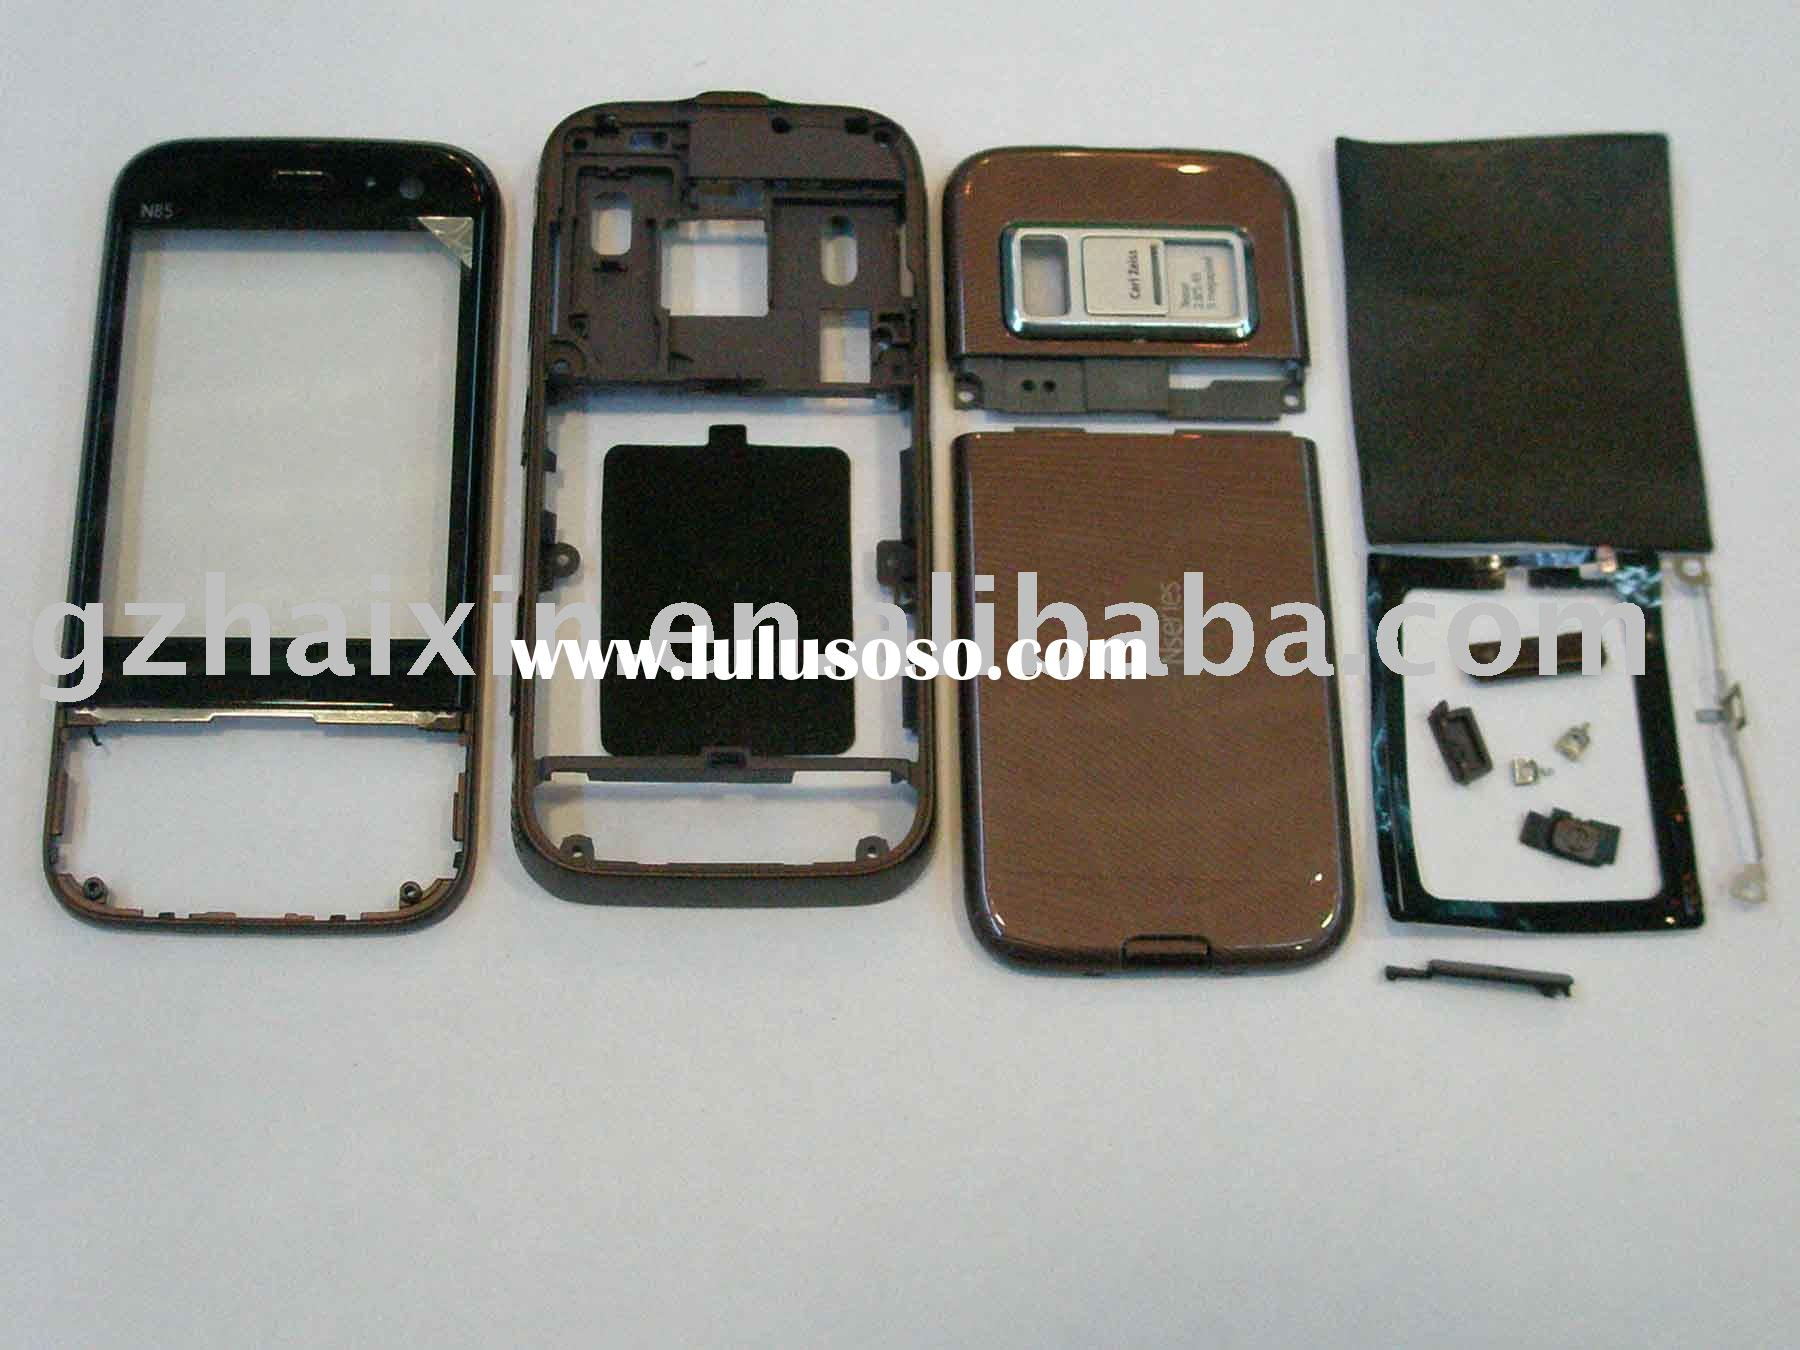 cell phone&mobile phone&cellular phone housing&faceplate&cover&case for Nokia N7